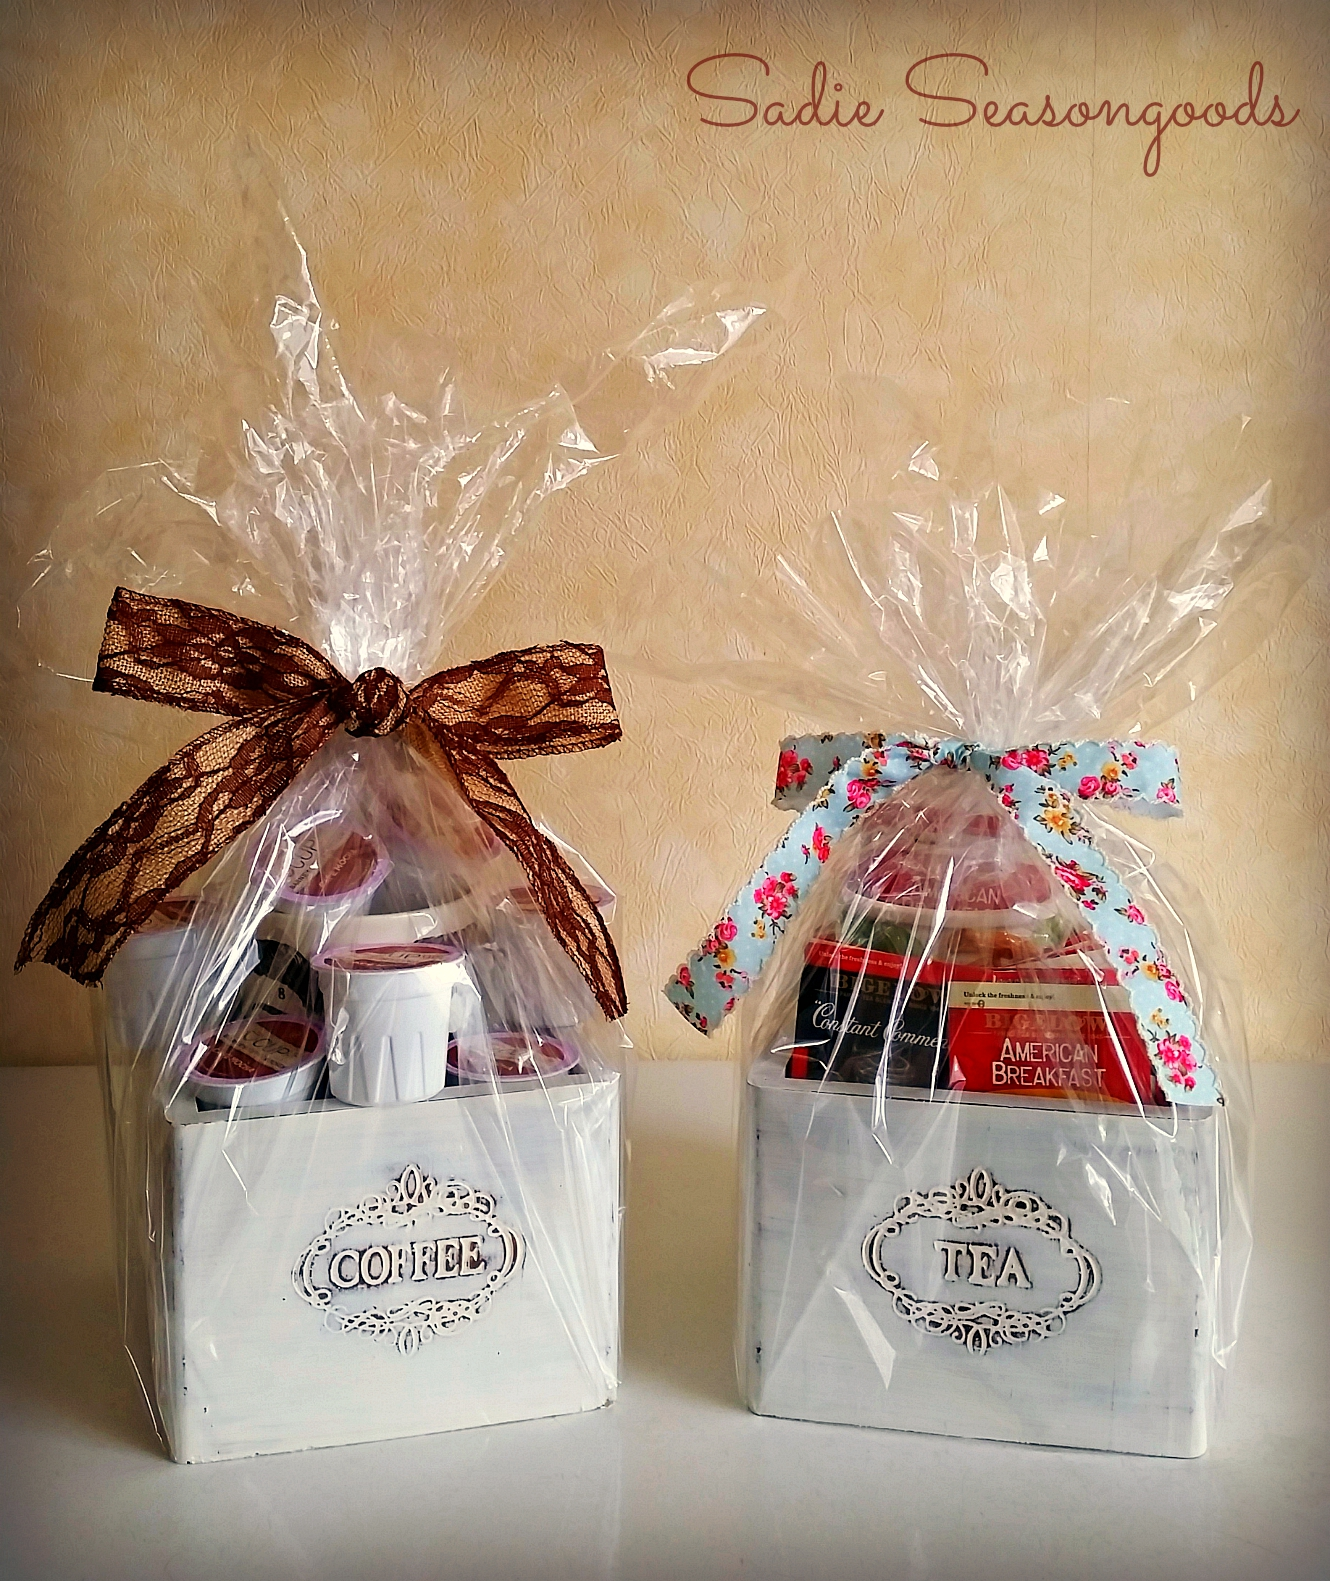 7_coffee_tea_gift_boxes_from_Goodwill_by_Sadie_Seasongoods